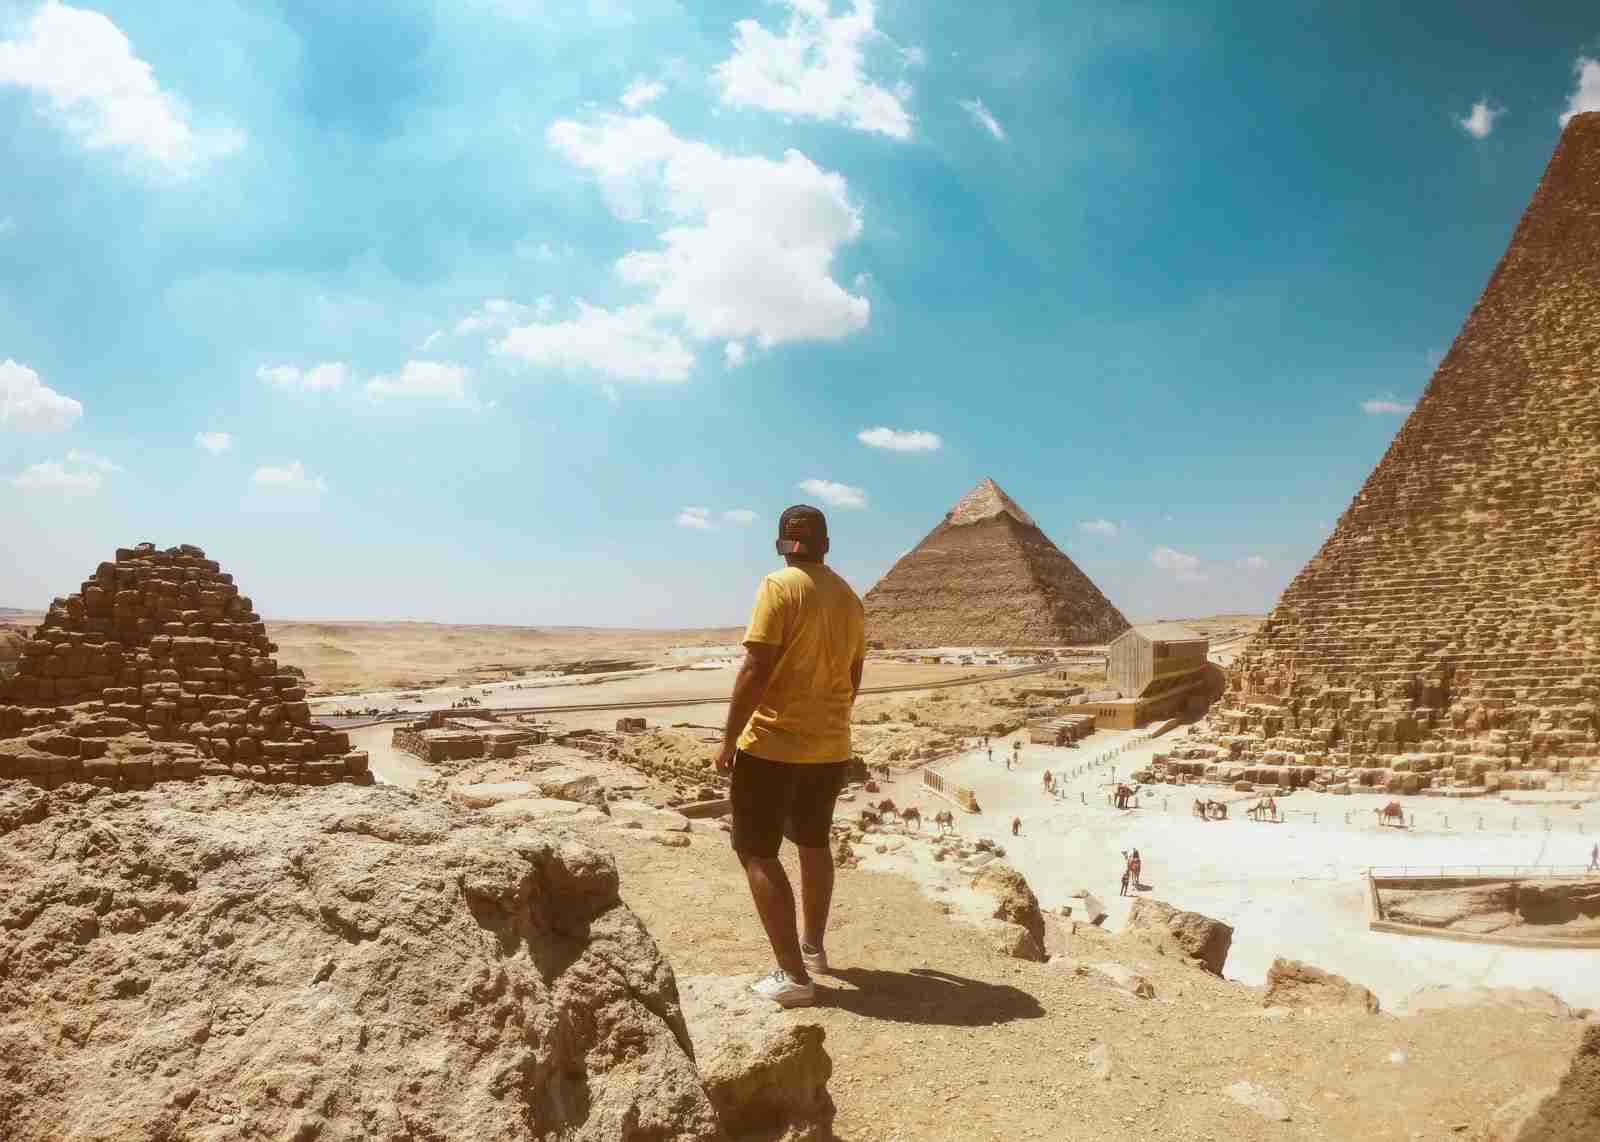 Check out the pyramids when visiting Cairo, Eygpt. (Photo by Omar Elsharawy/Unsplash)